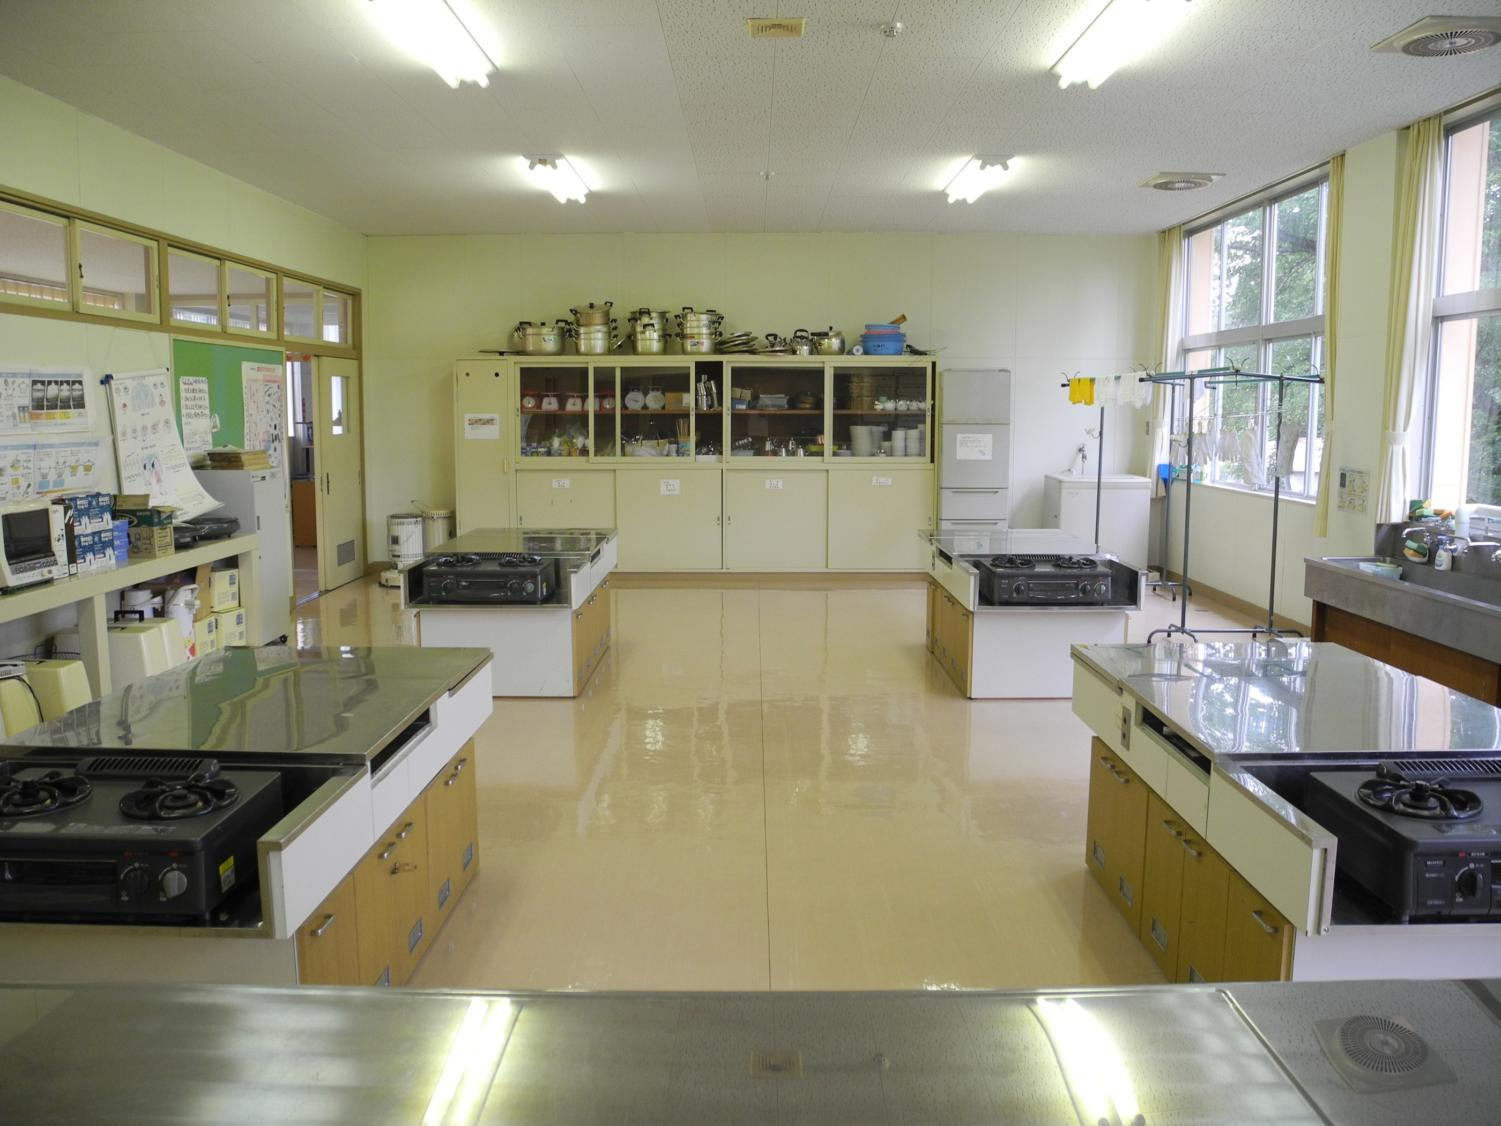 A kitchen classroom in Japan.